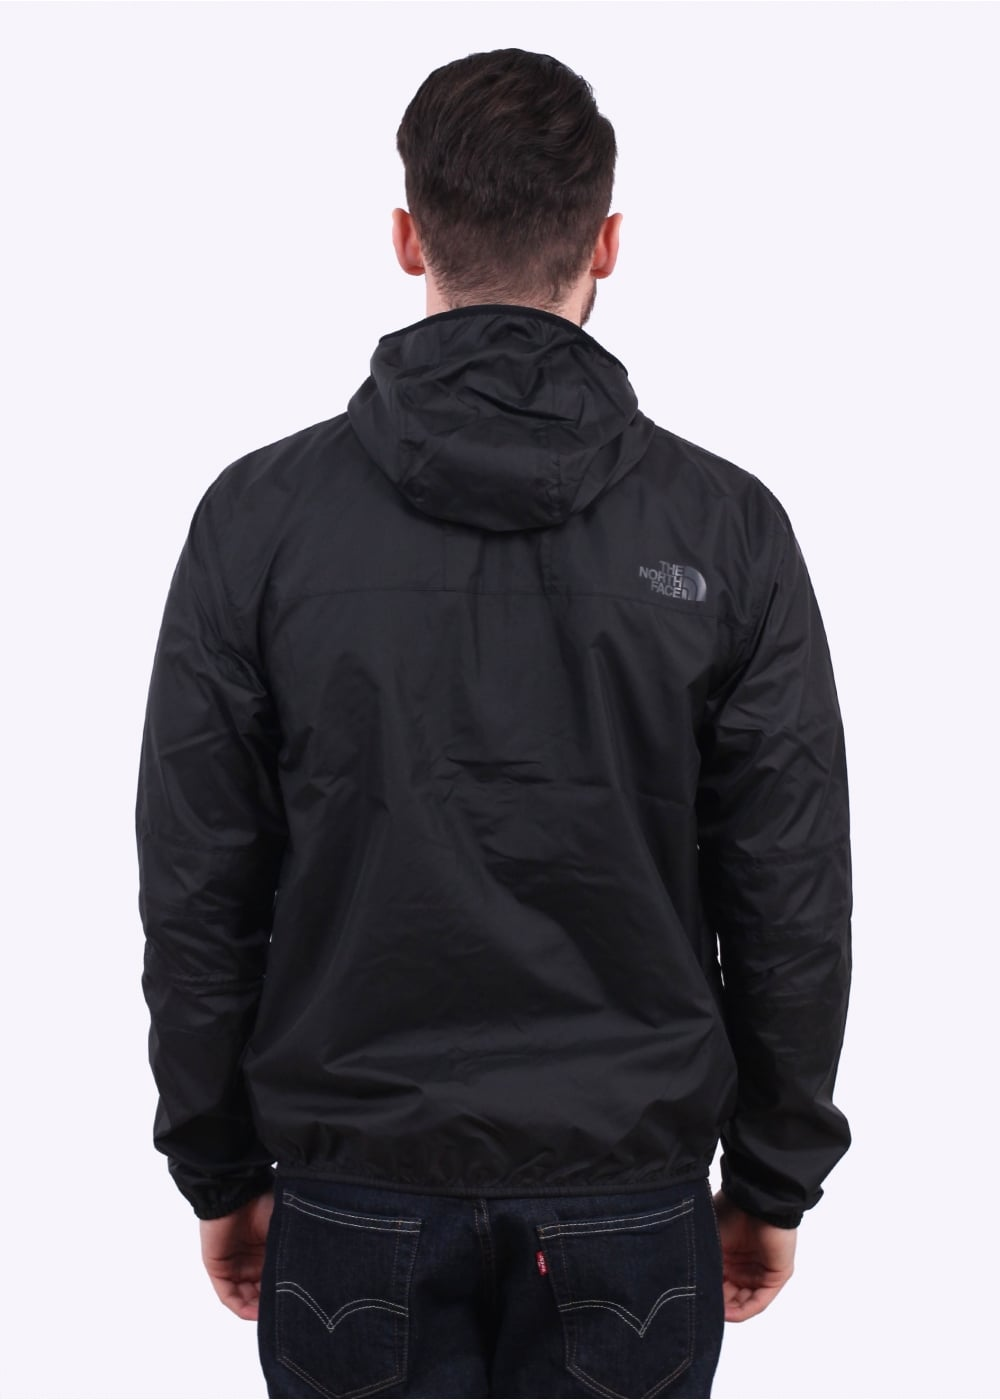 The North Face 1985 Mountain Jacket Black